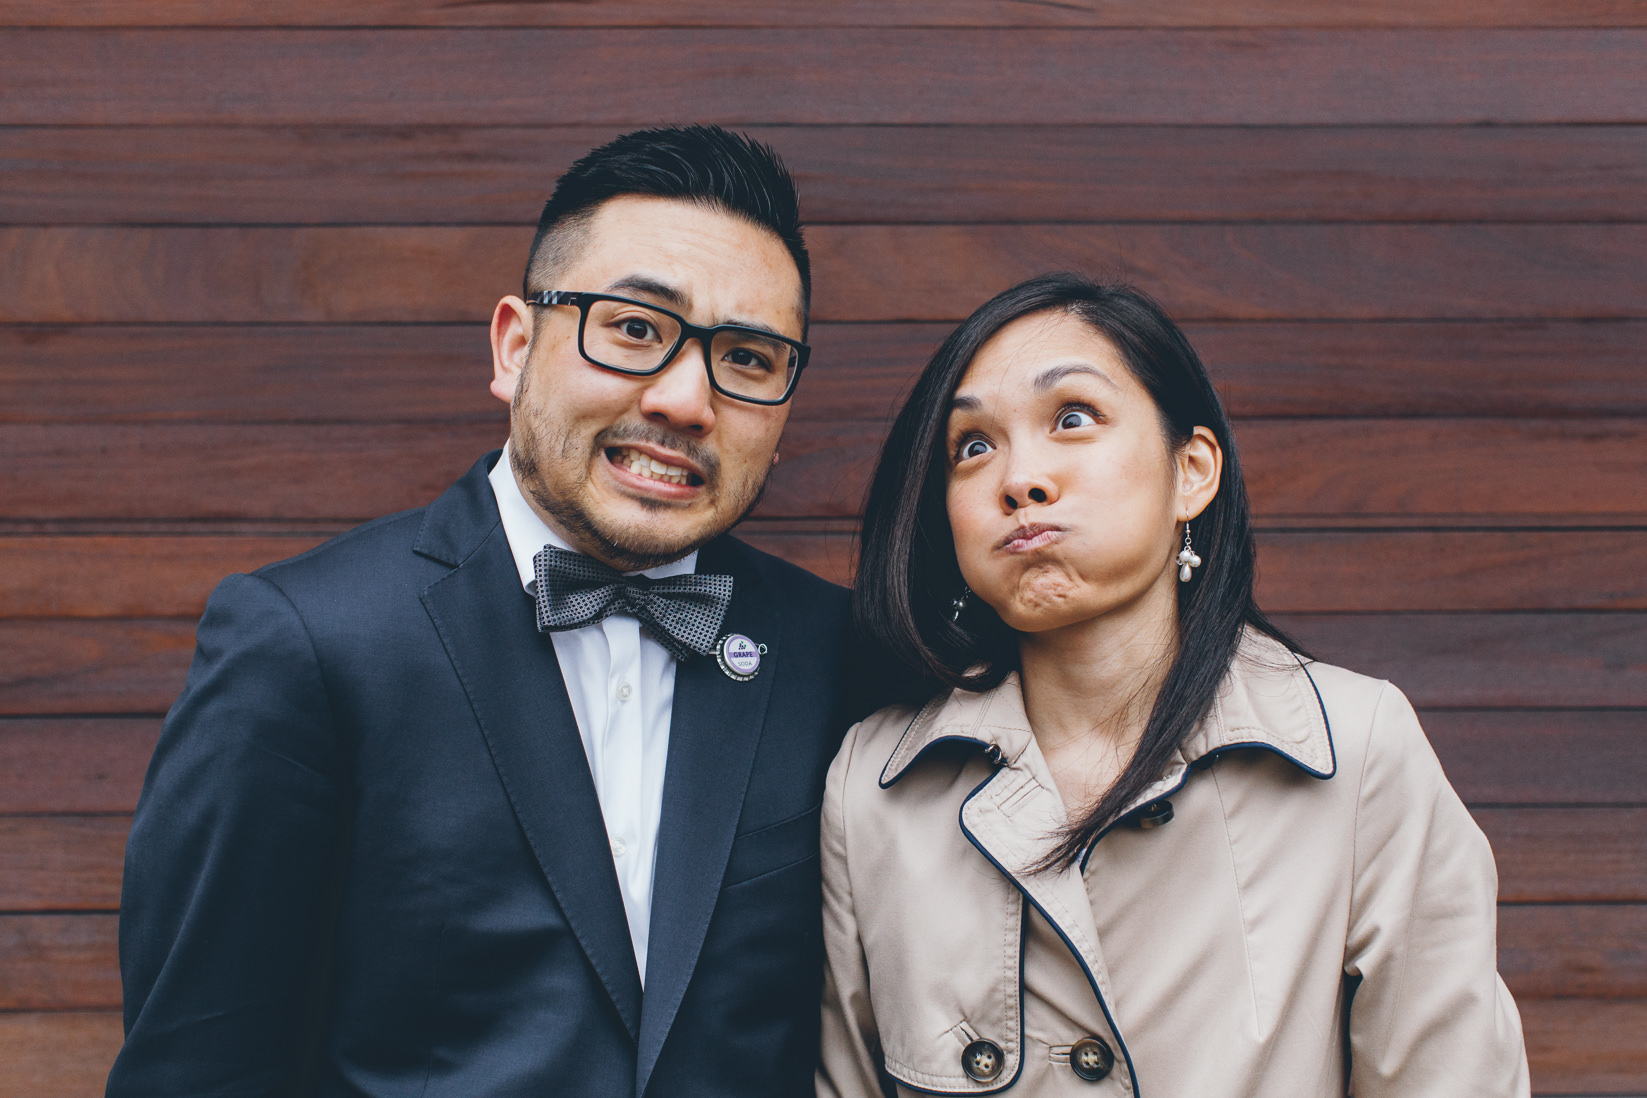 Funny Bride & Groom portraits | Nathan Phillips Square | Toronto City Hall Wedding | EIGHTYFIFTH STREET PHOTOGRAPHY